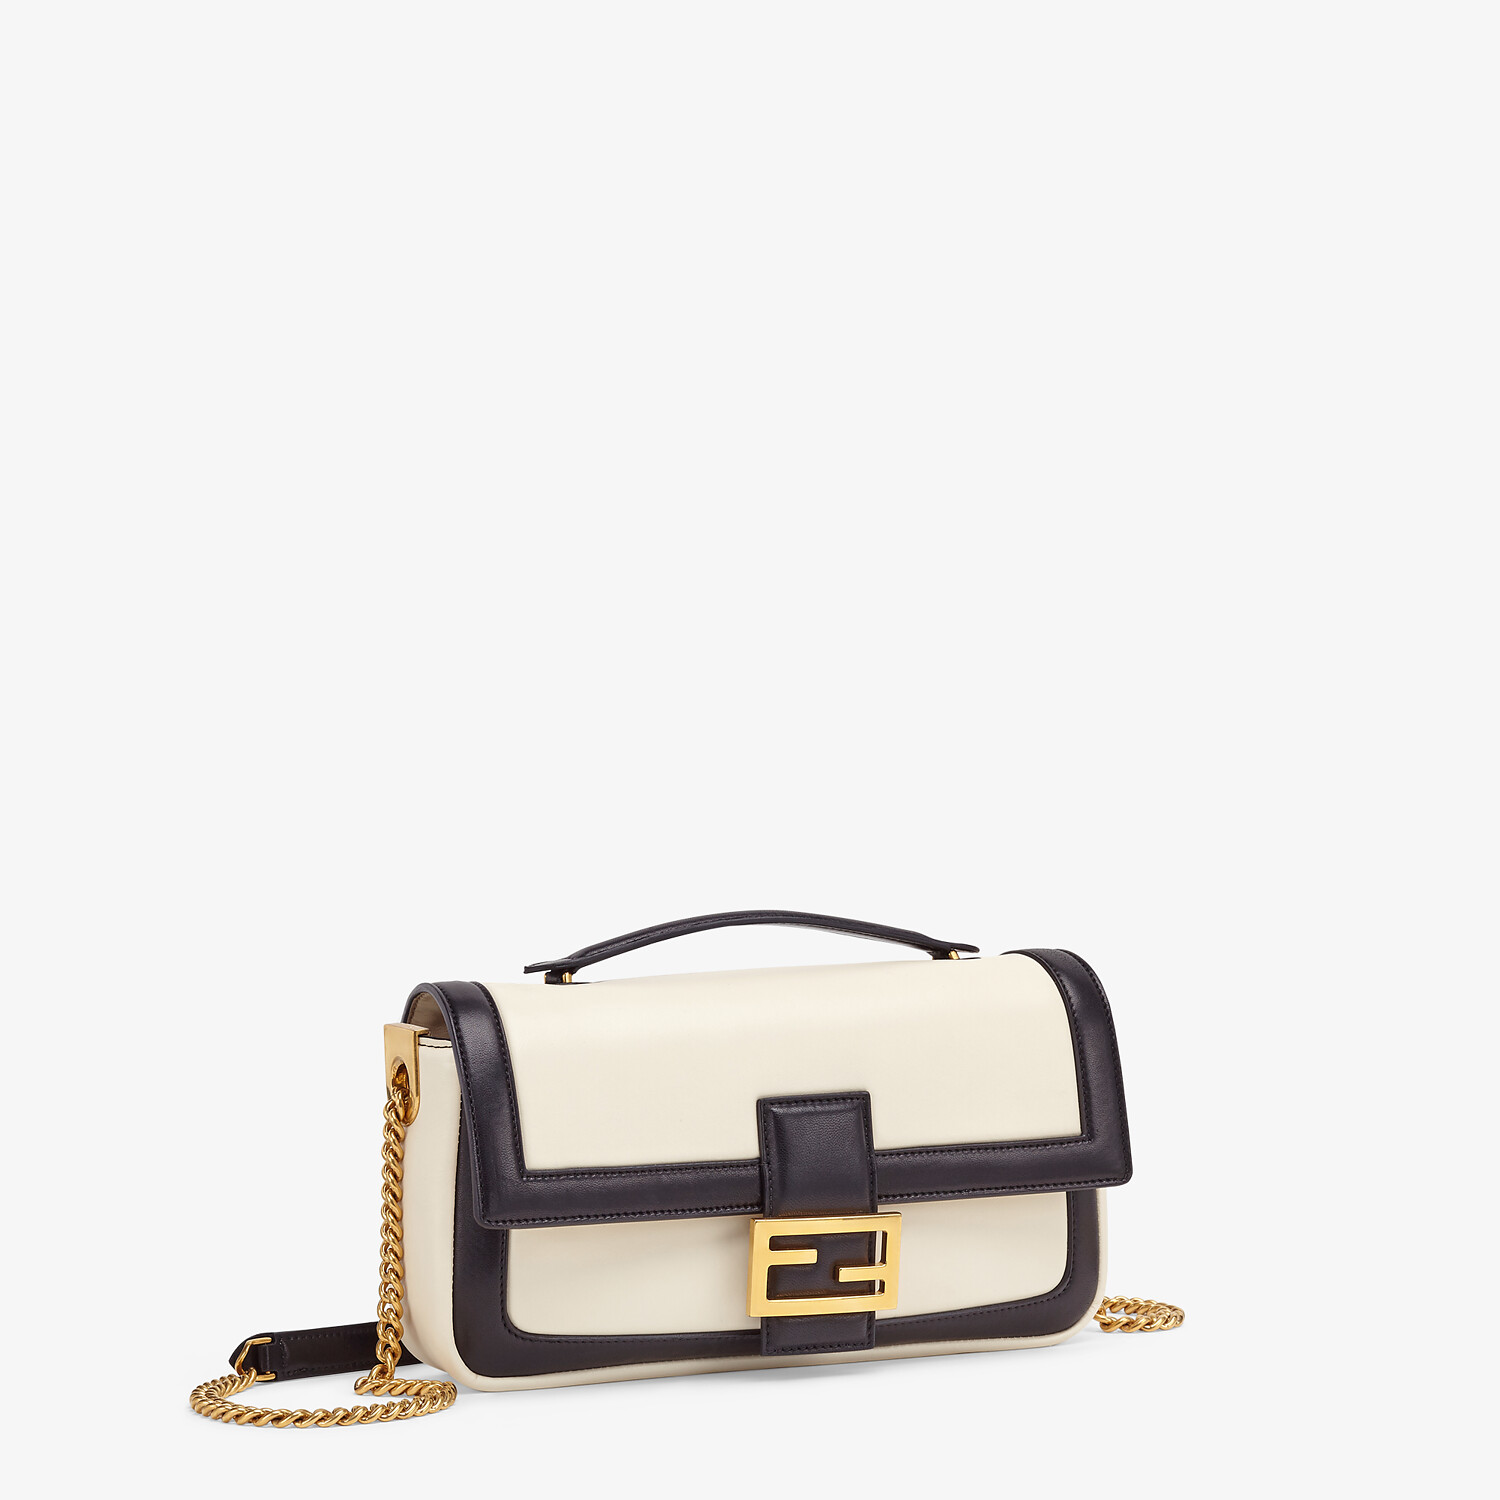 FENDI BAGUETTE CHAIN - Black and white nappa leather bag - view 3 detail